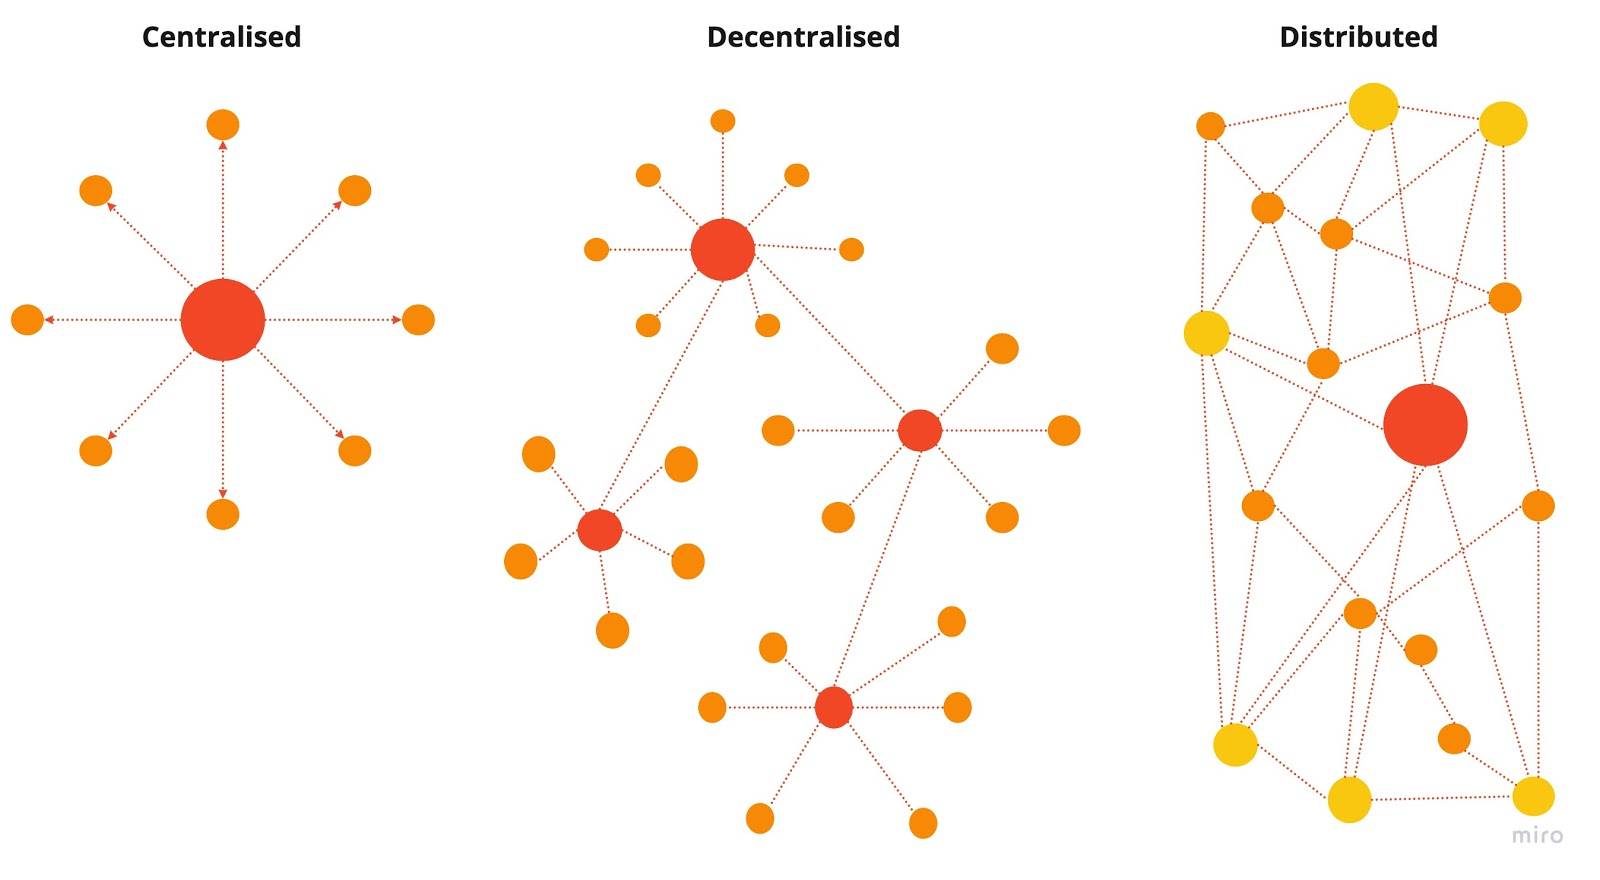 Diagram shows centralised, decentralised and distributed content models